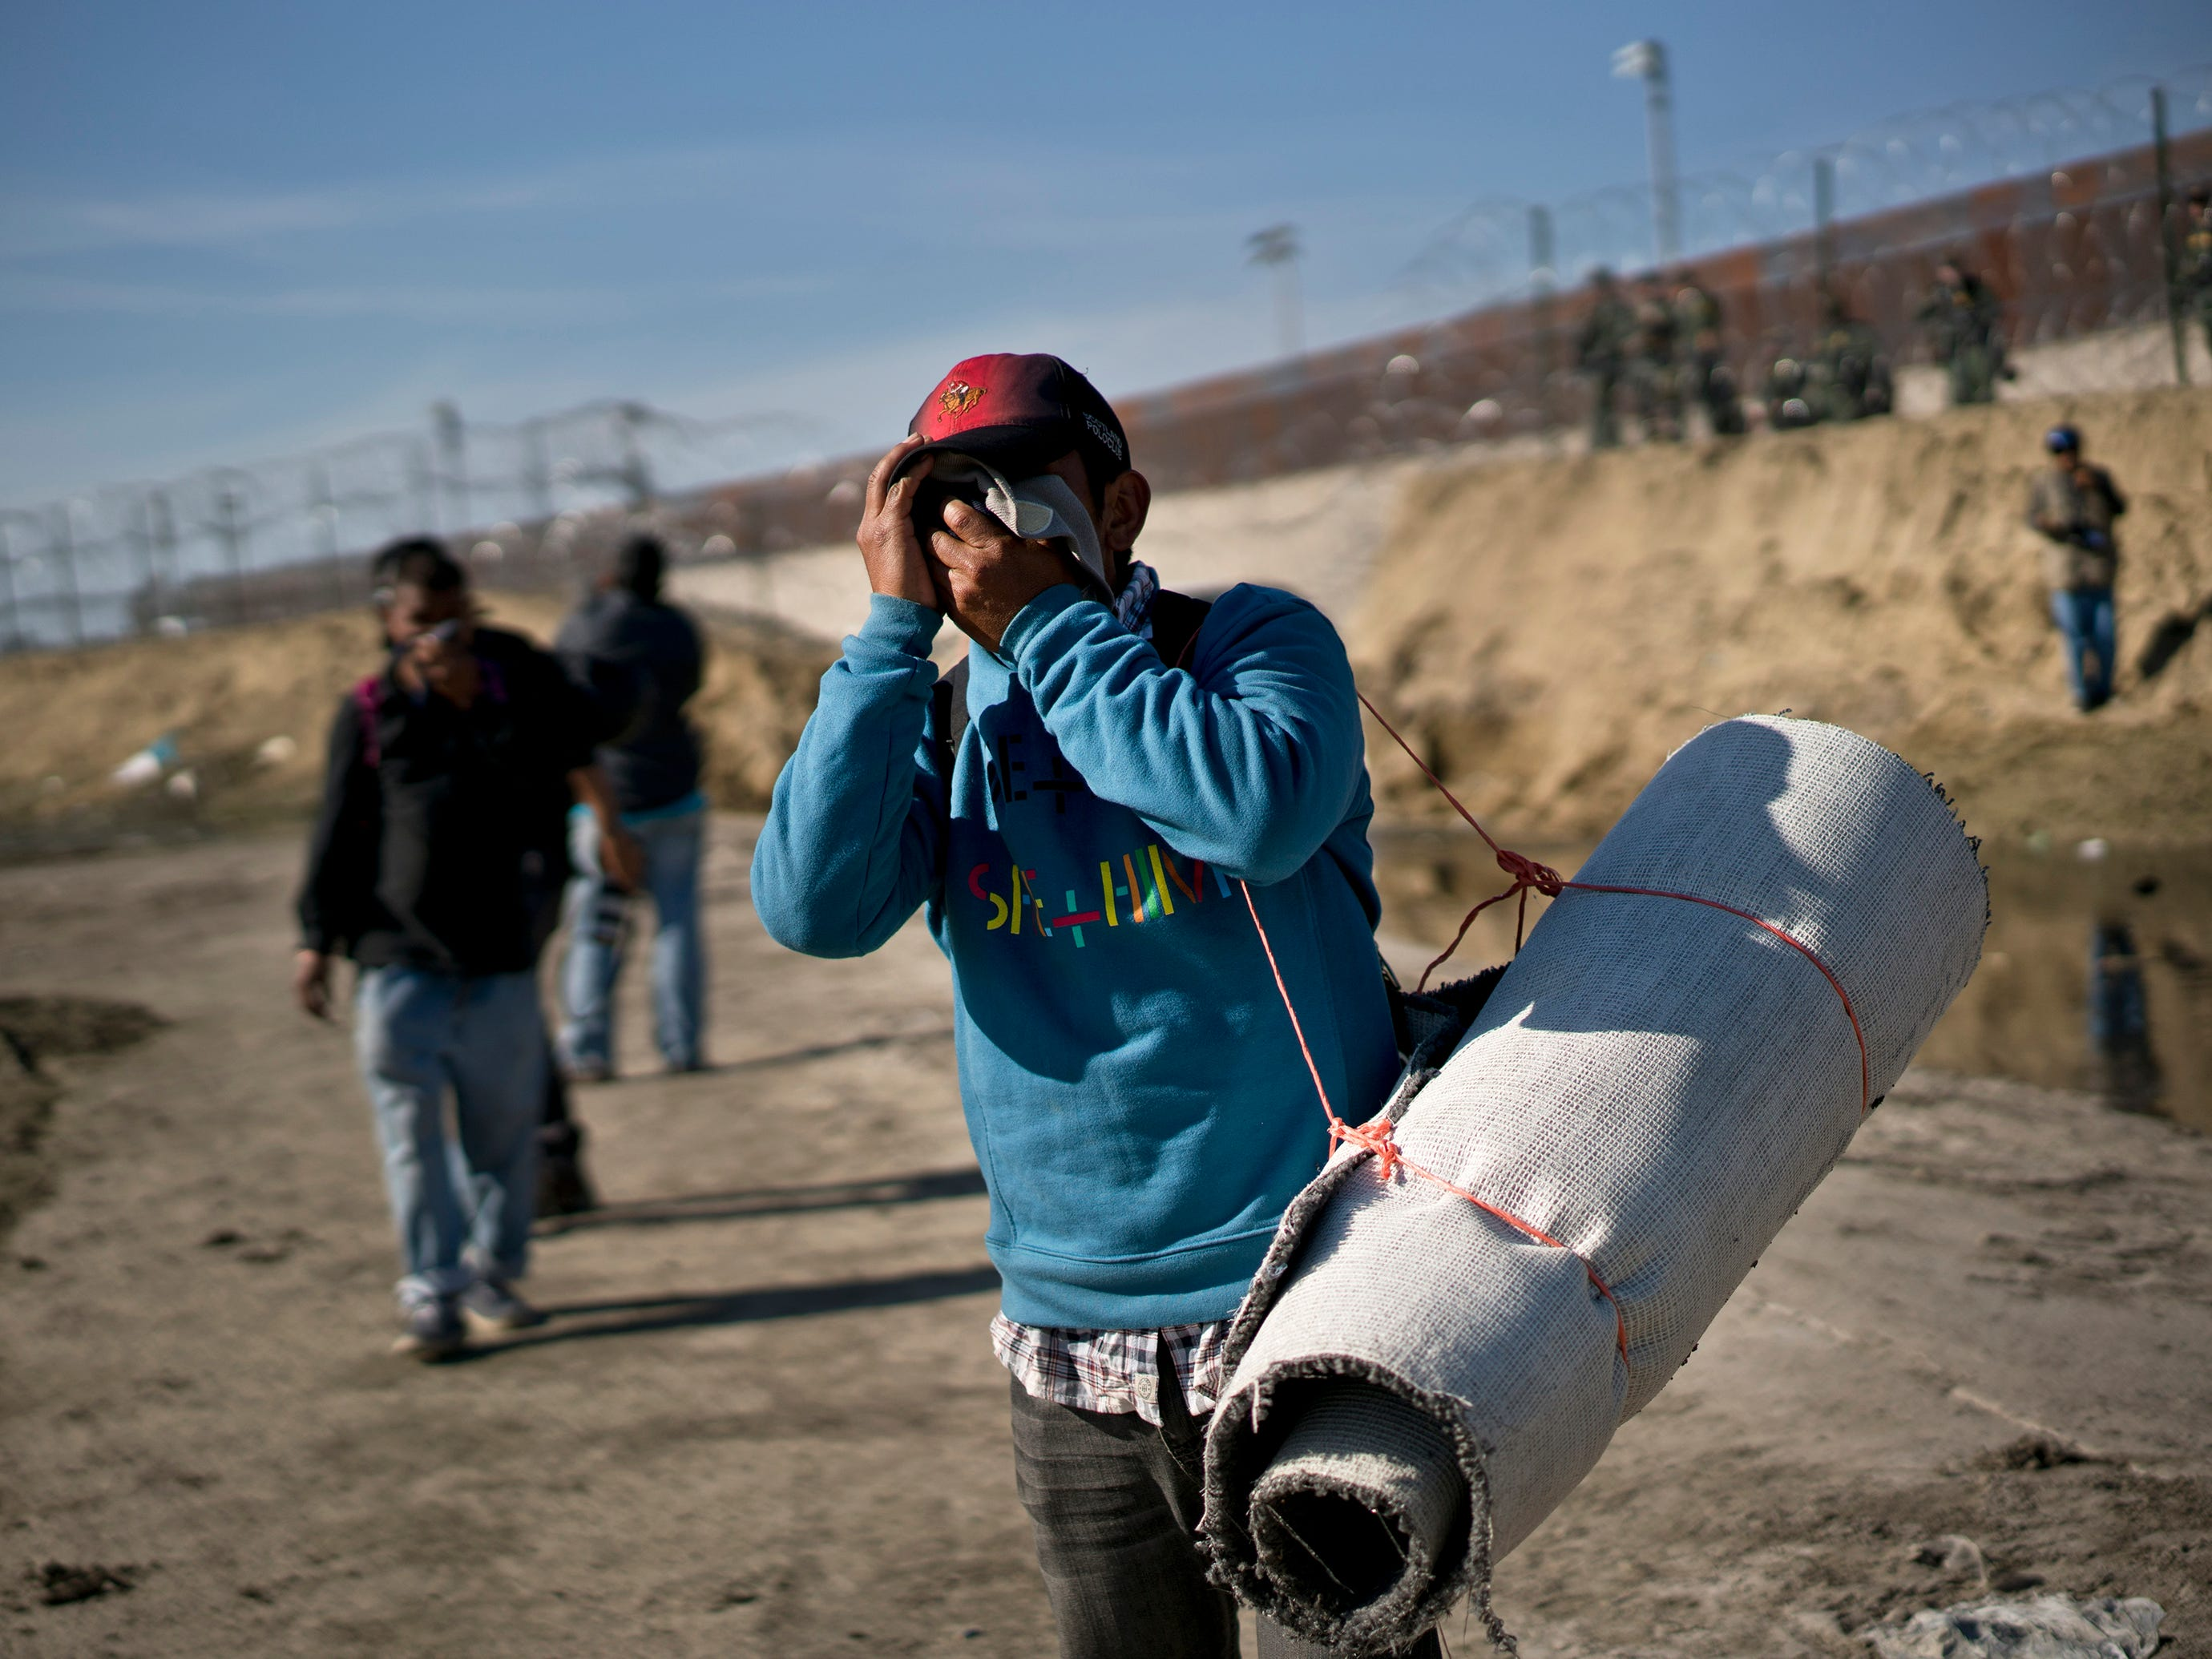 A migrant wipes his face after U.S. border agents fired tear gas at a group of migrants who had pushed past Mexican police at the Chaparral border crossing in Tijuana, Mexico on Nov. 25, 2018.